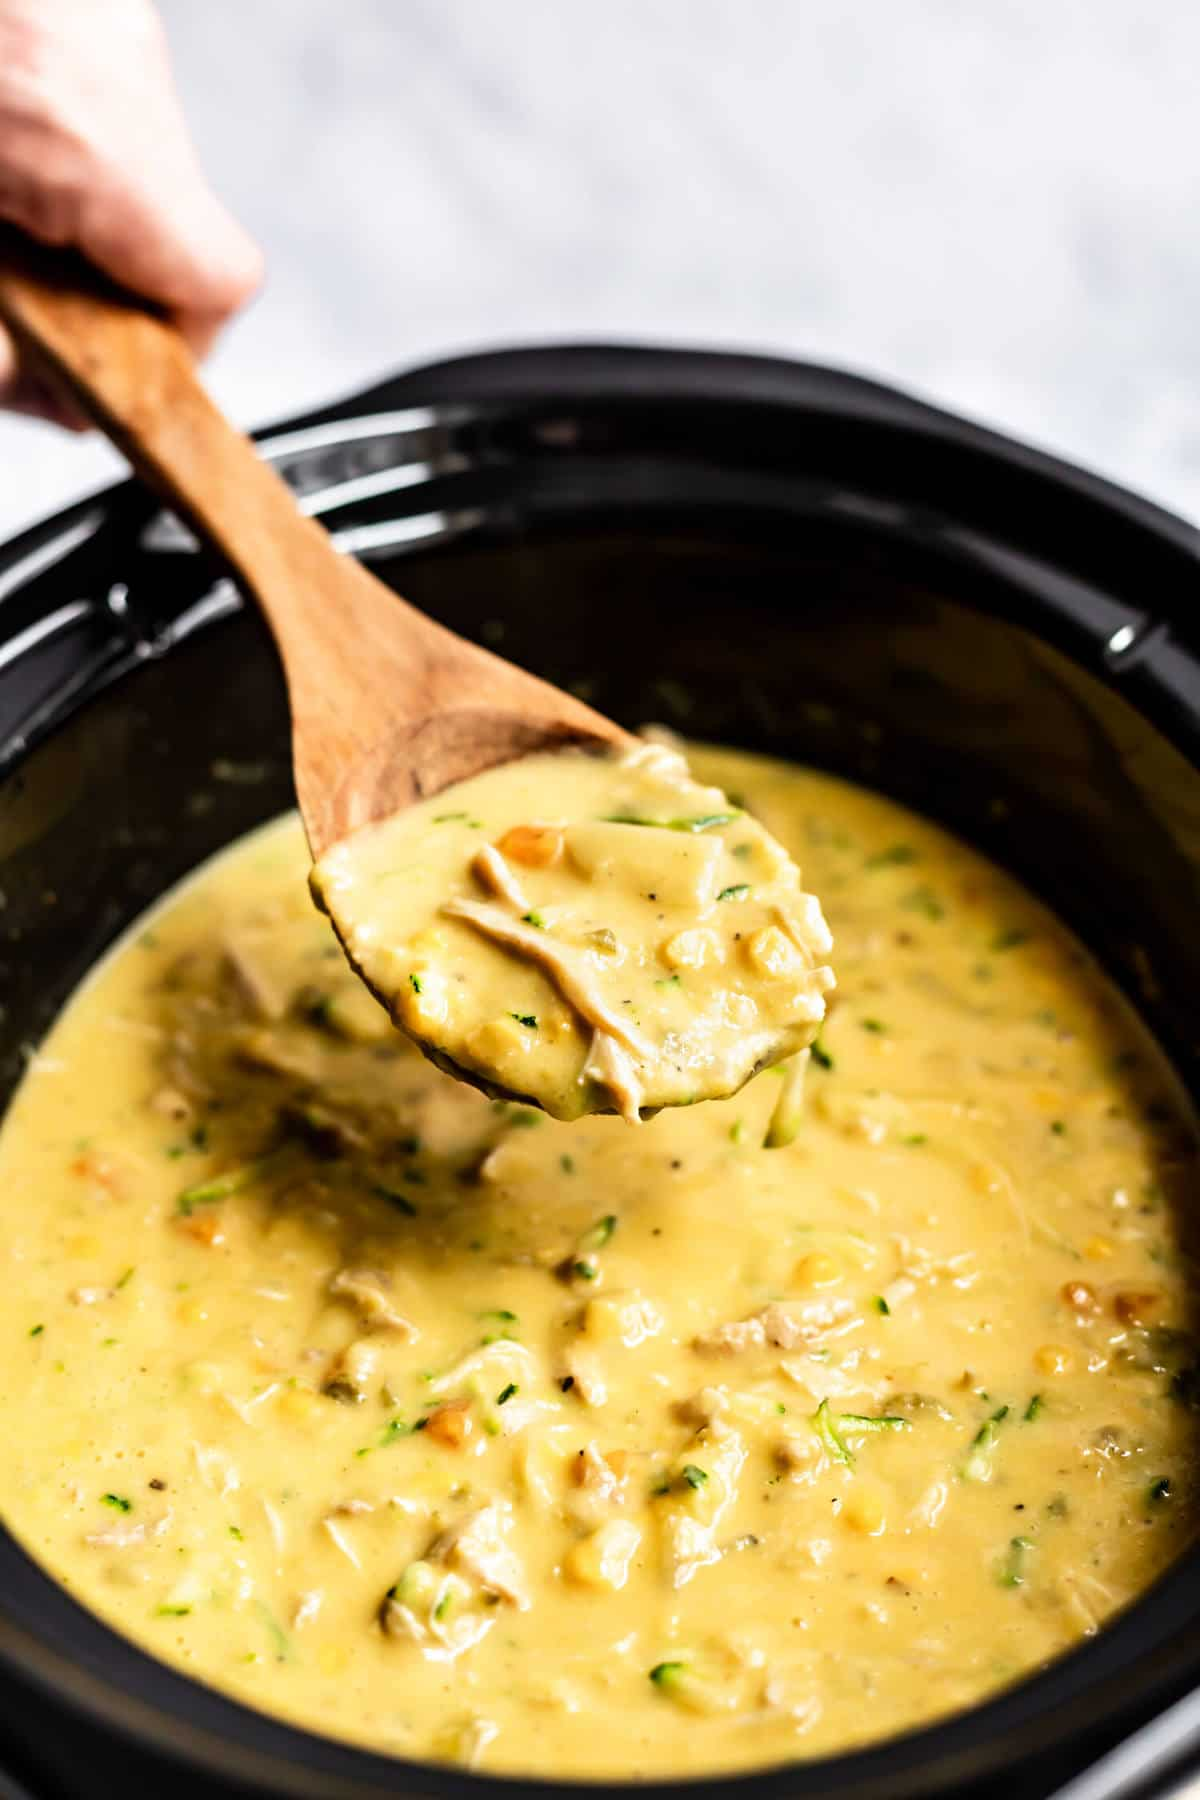 a wooden spoon lifting out some chowder from a slow cooker bowl